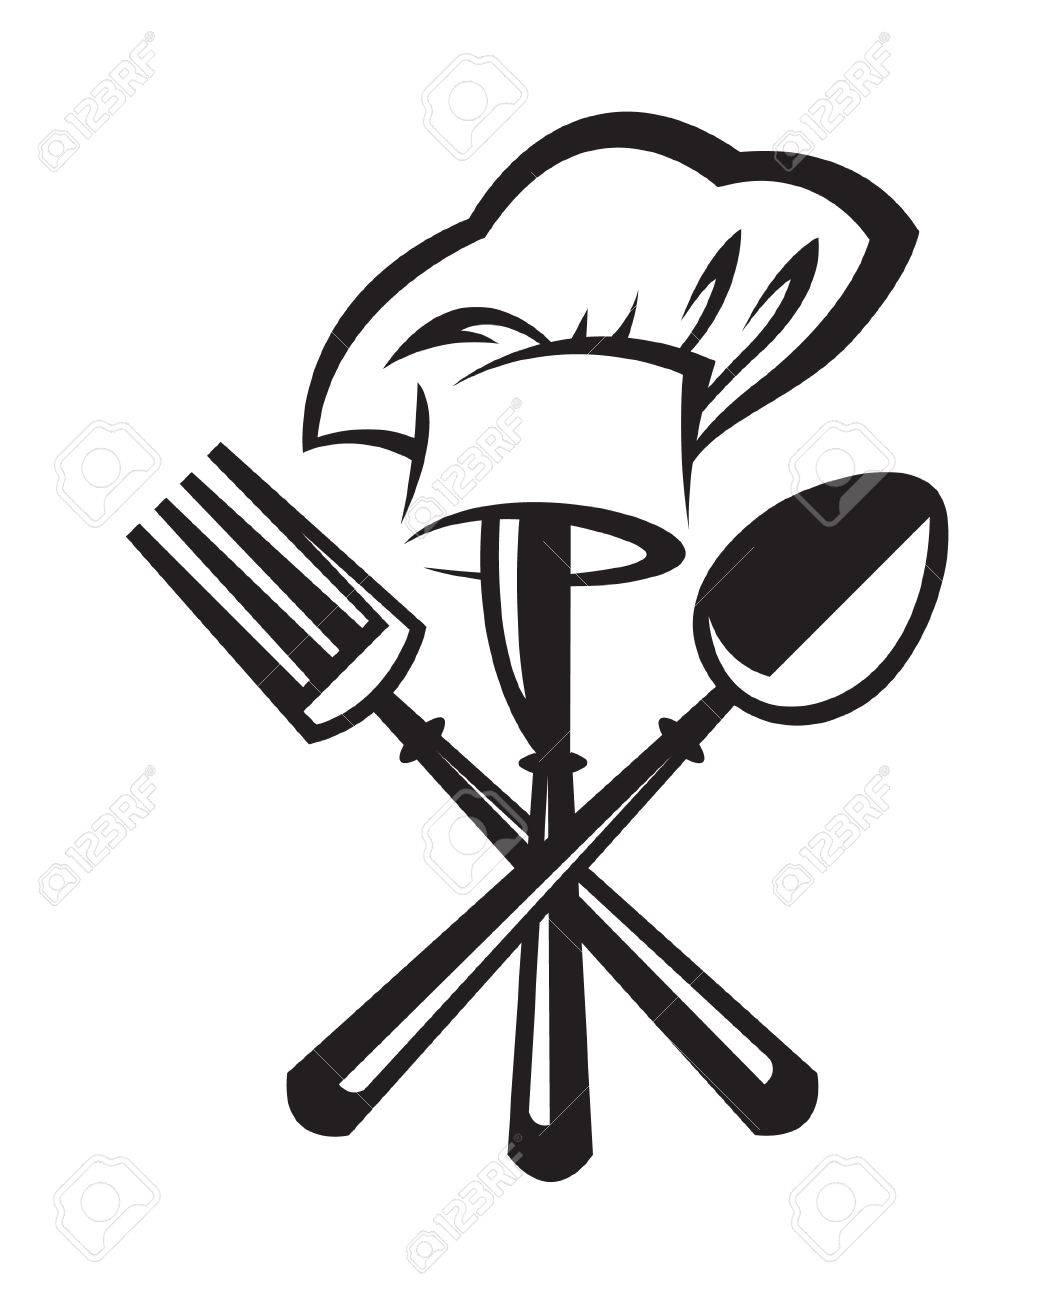 1063x1300 Silver Spoon Stock Photos. Royalty Free Silver Spoon Images